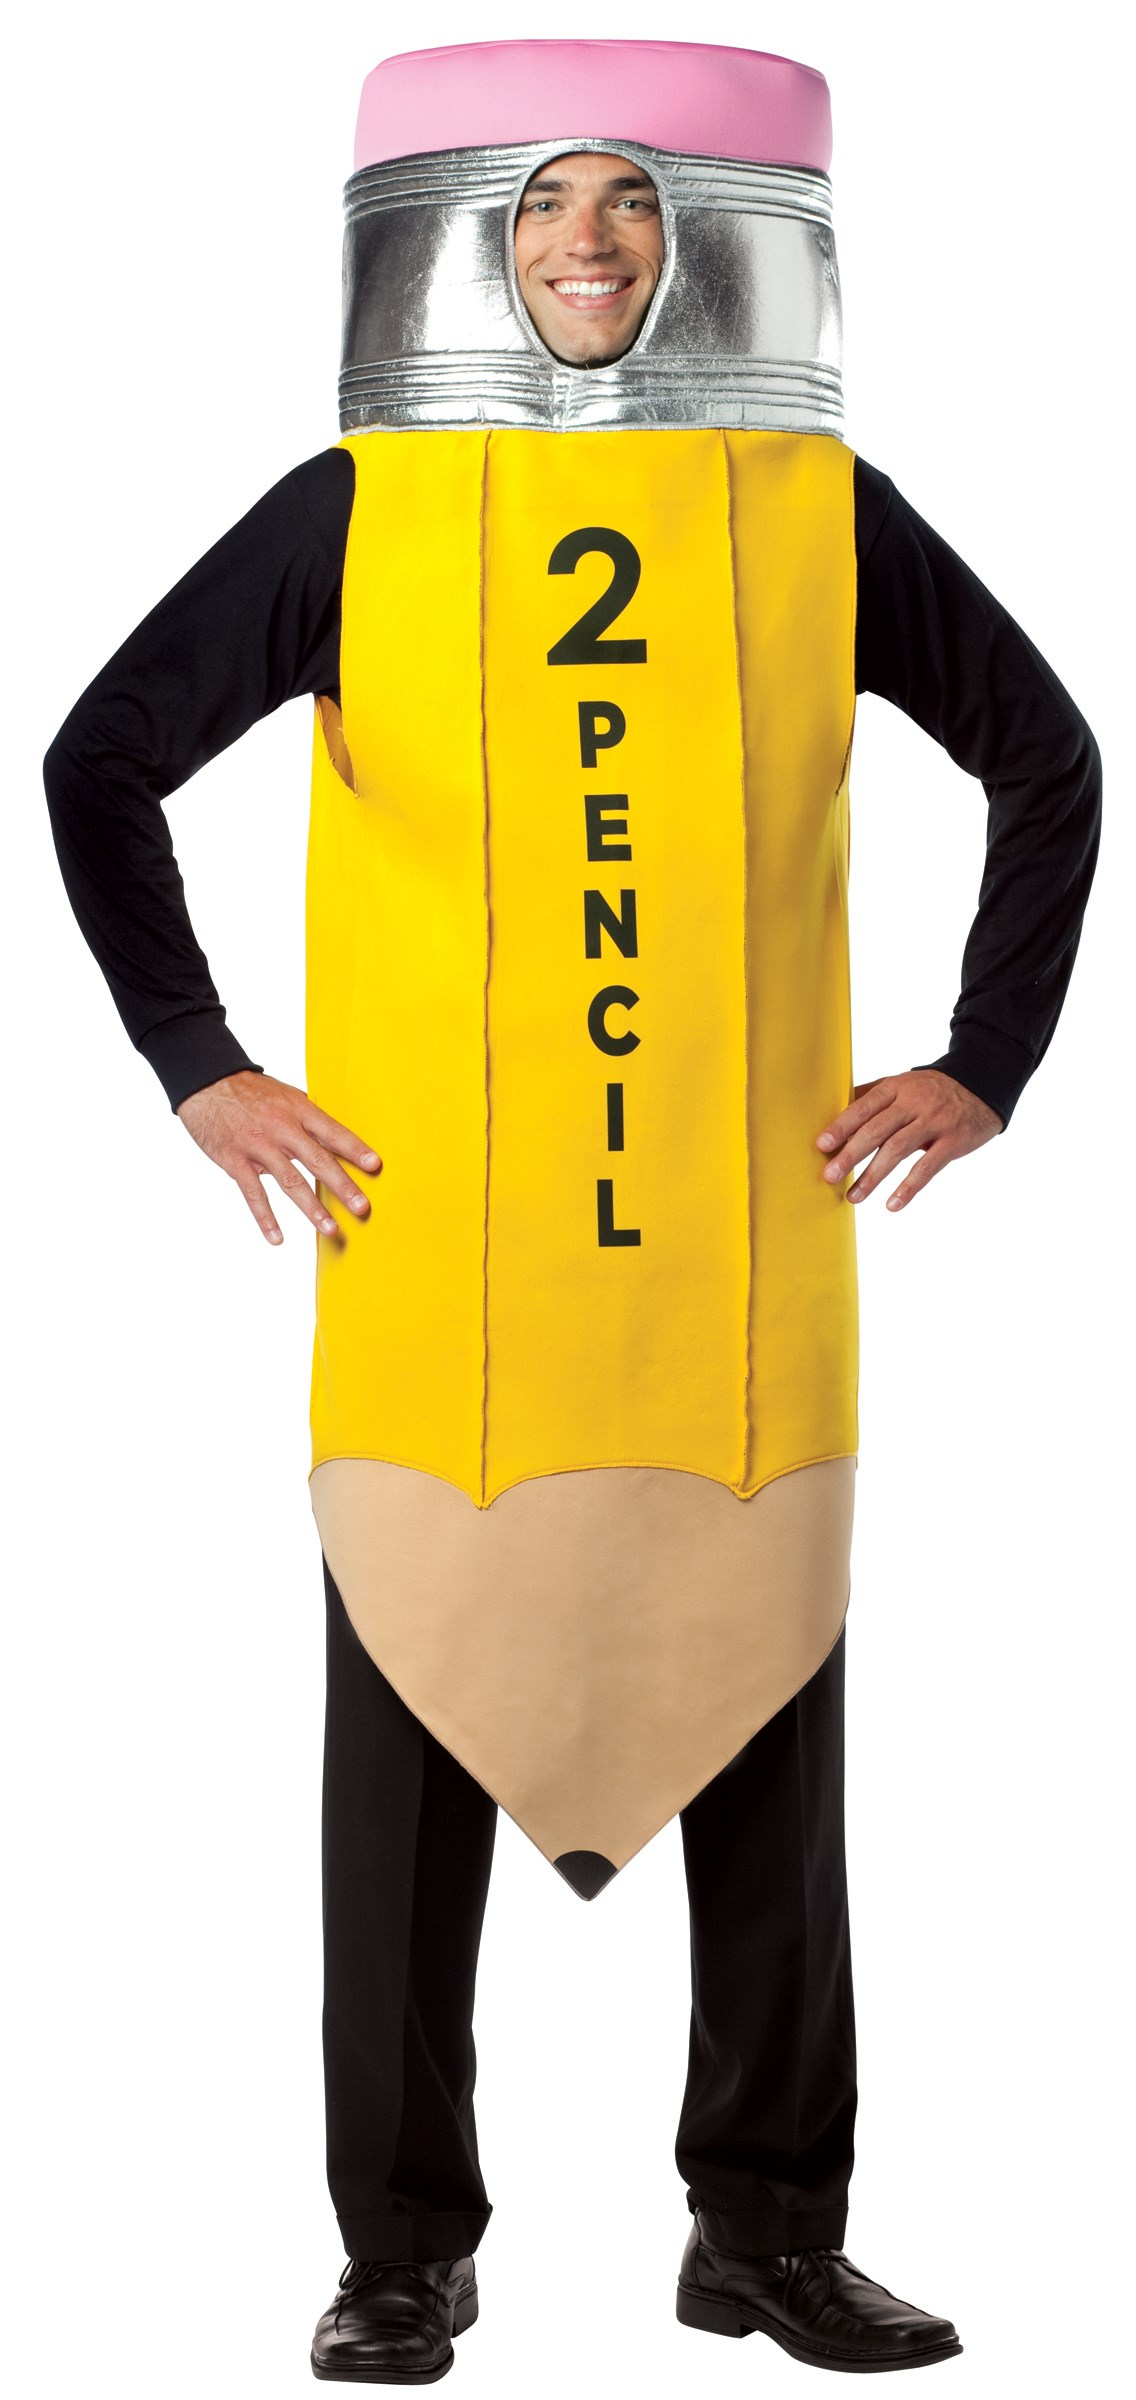 Image of 2 Pencil Adult Costume